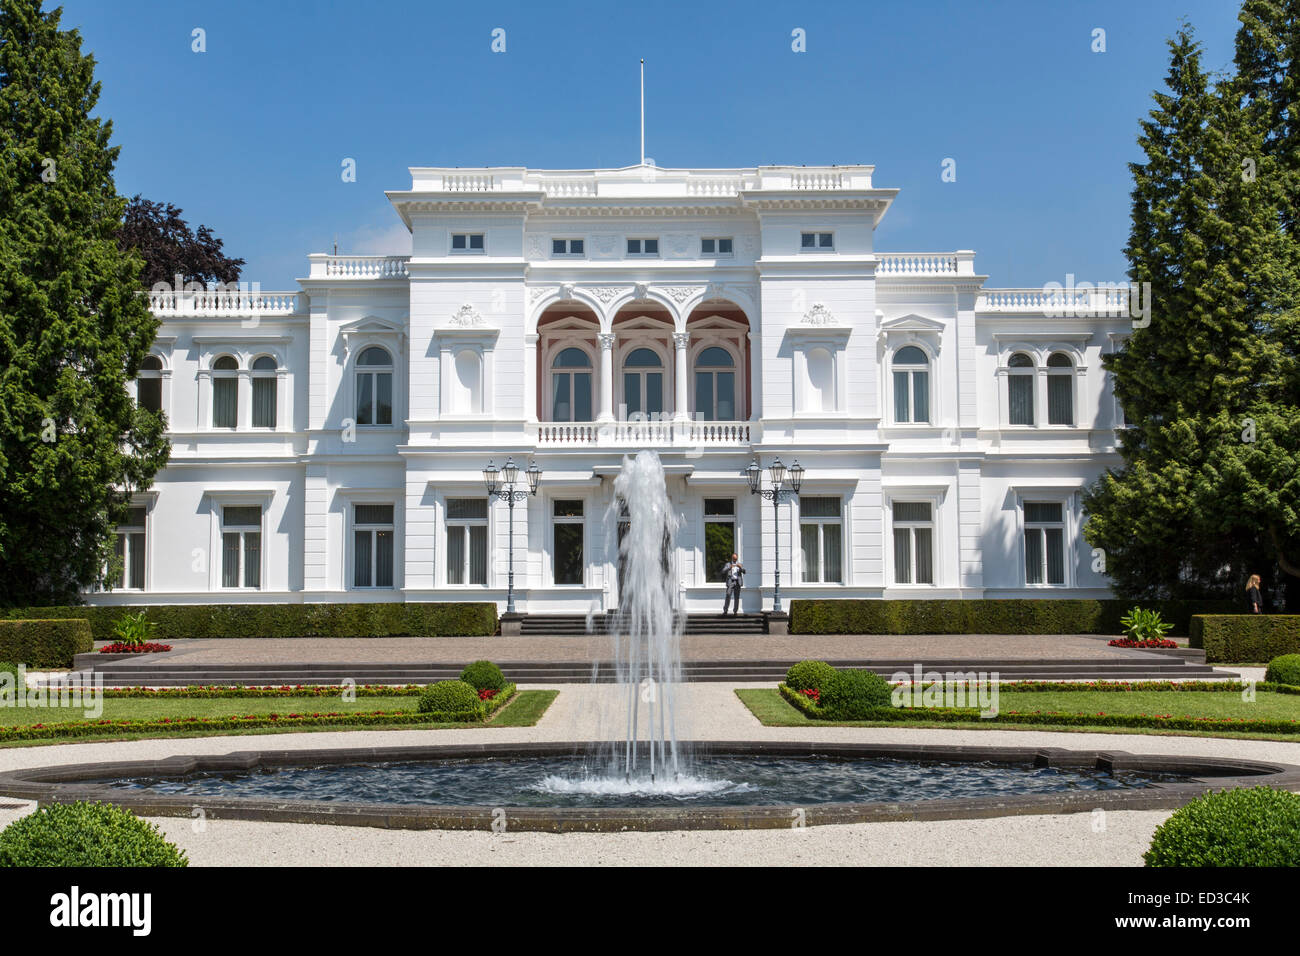 Villa Hammerschmidt in Bonn since 1950 and official residence of the German President, since 1994, secondary residence - Stock Image